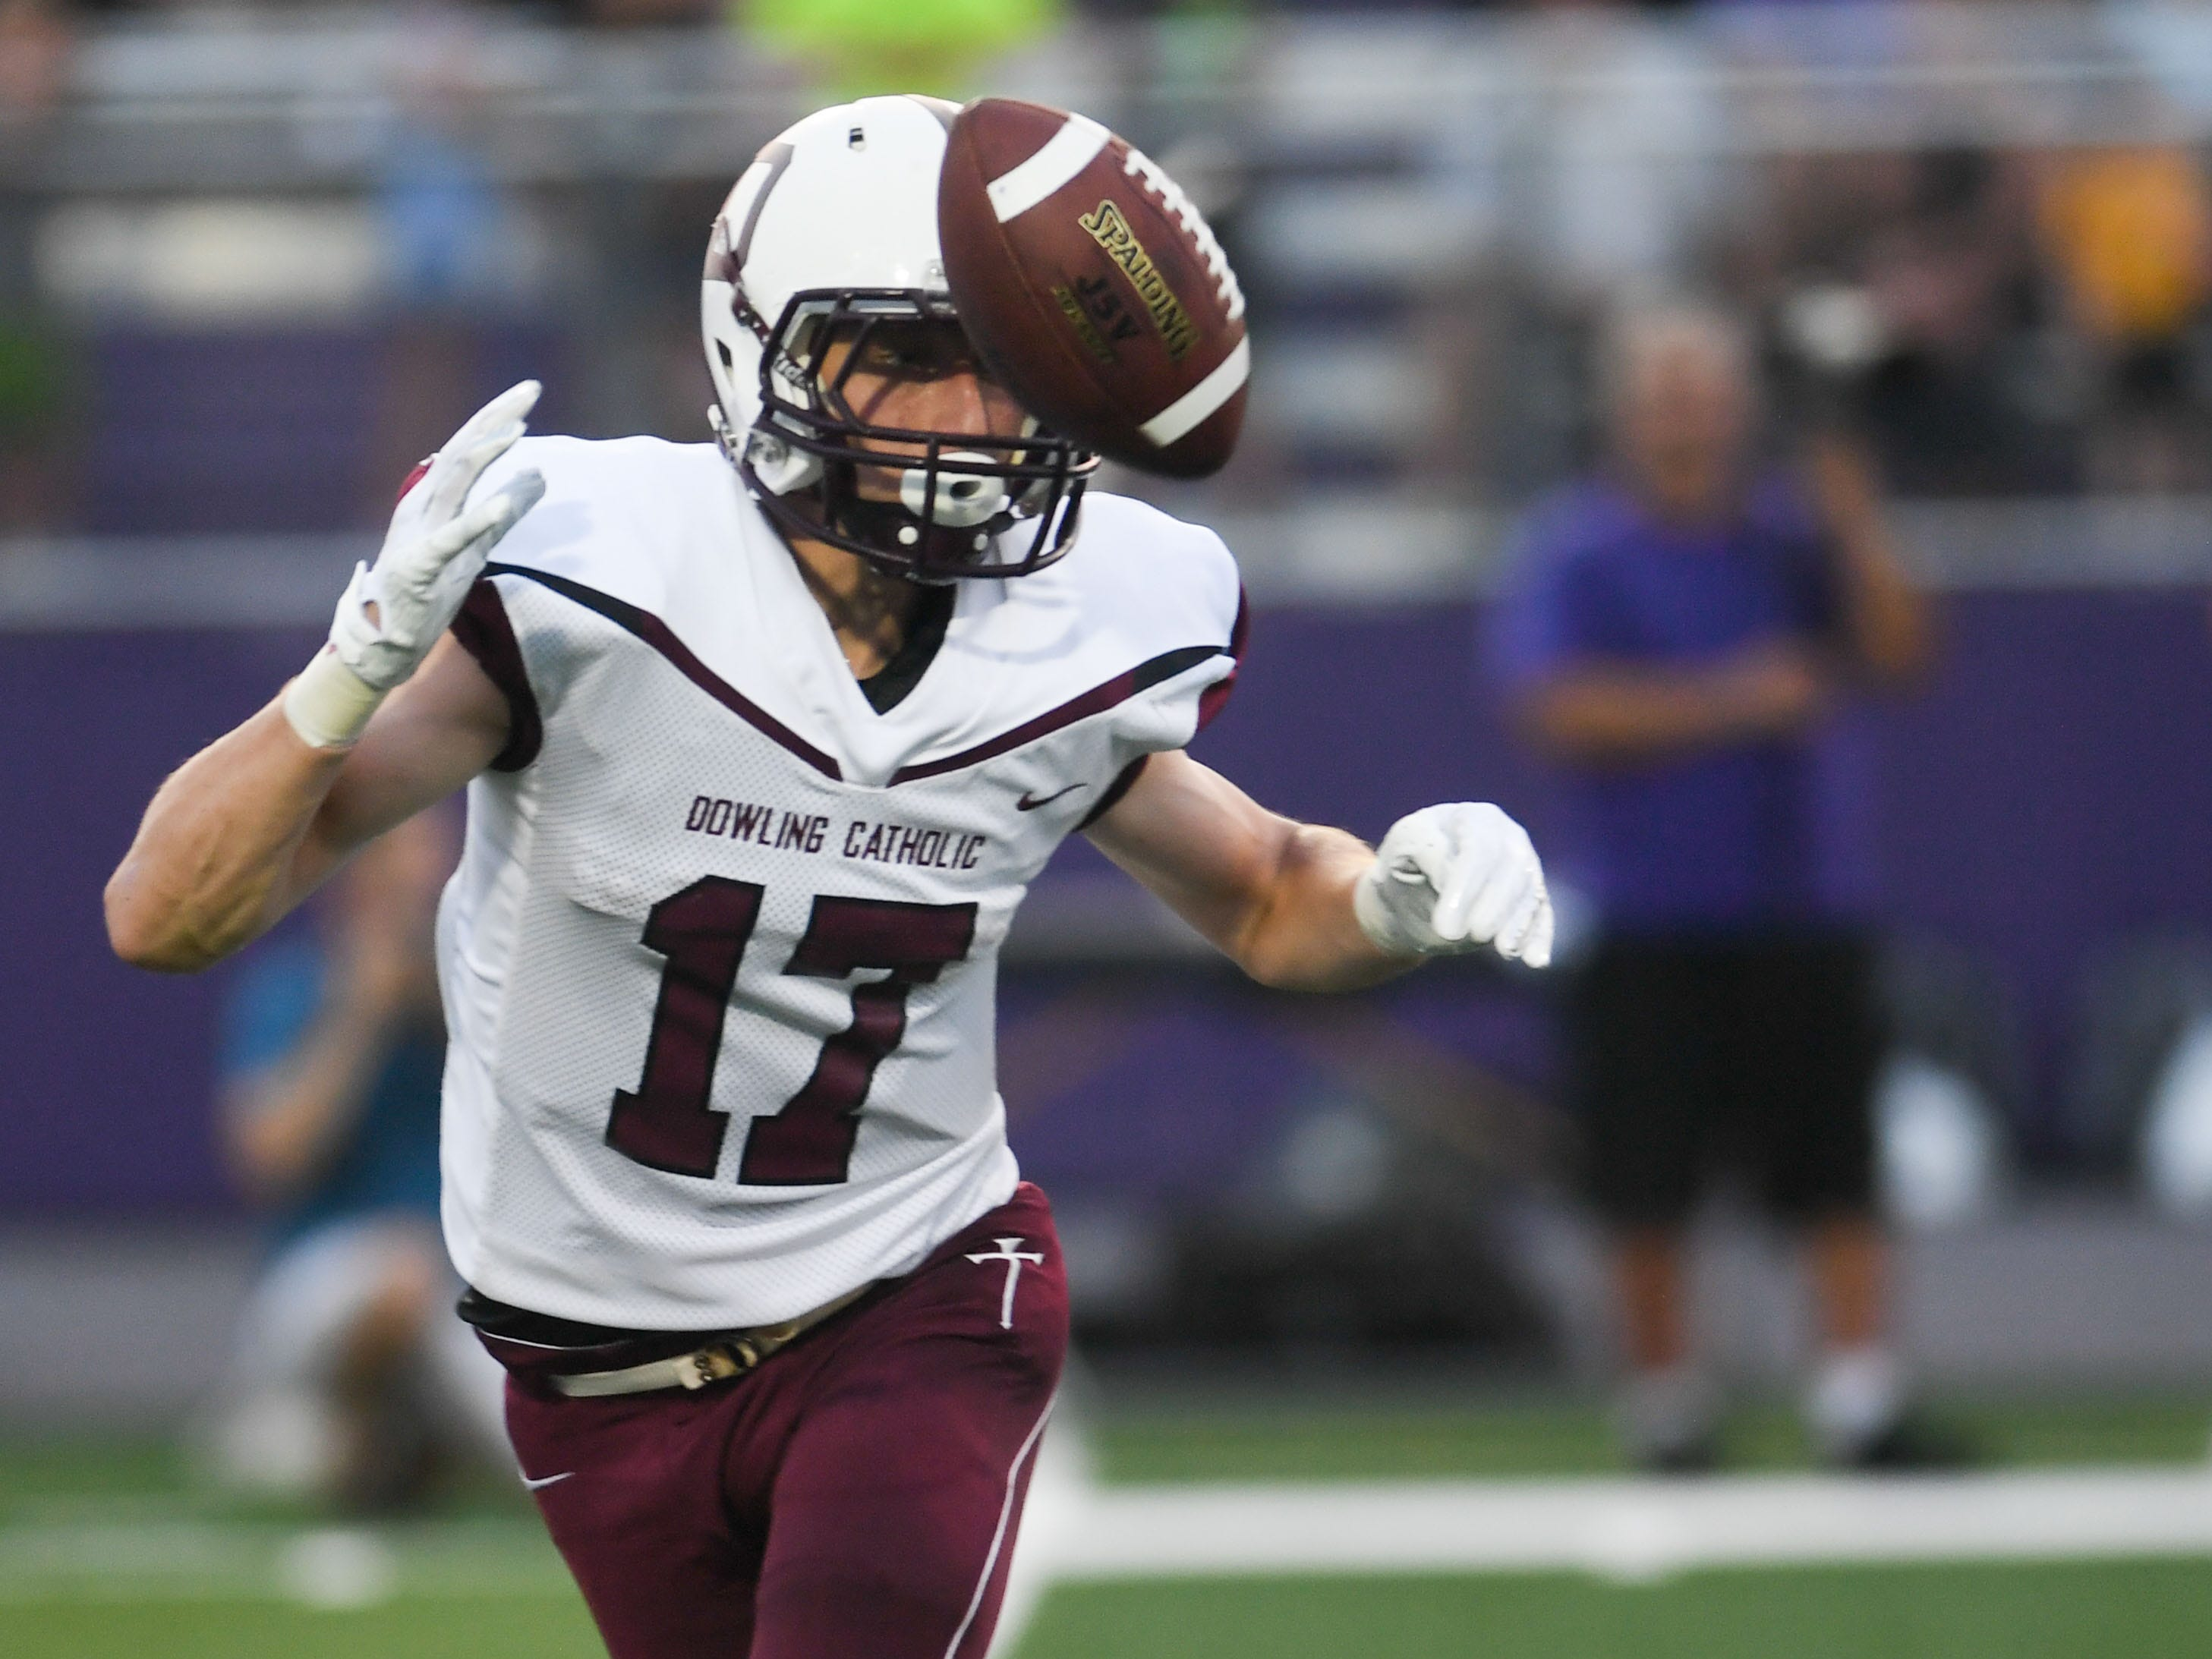 Dowling's Matt Stilwill (17) watches the ball during a kick return on Friday, August 24, 2018 during a football game between the Waukee Warriors and the Dowling Catholic Maroons at Waukee High School.